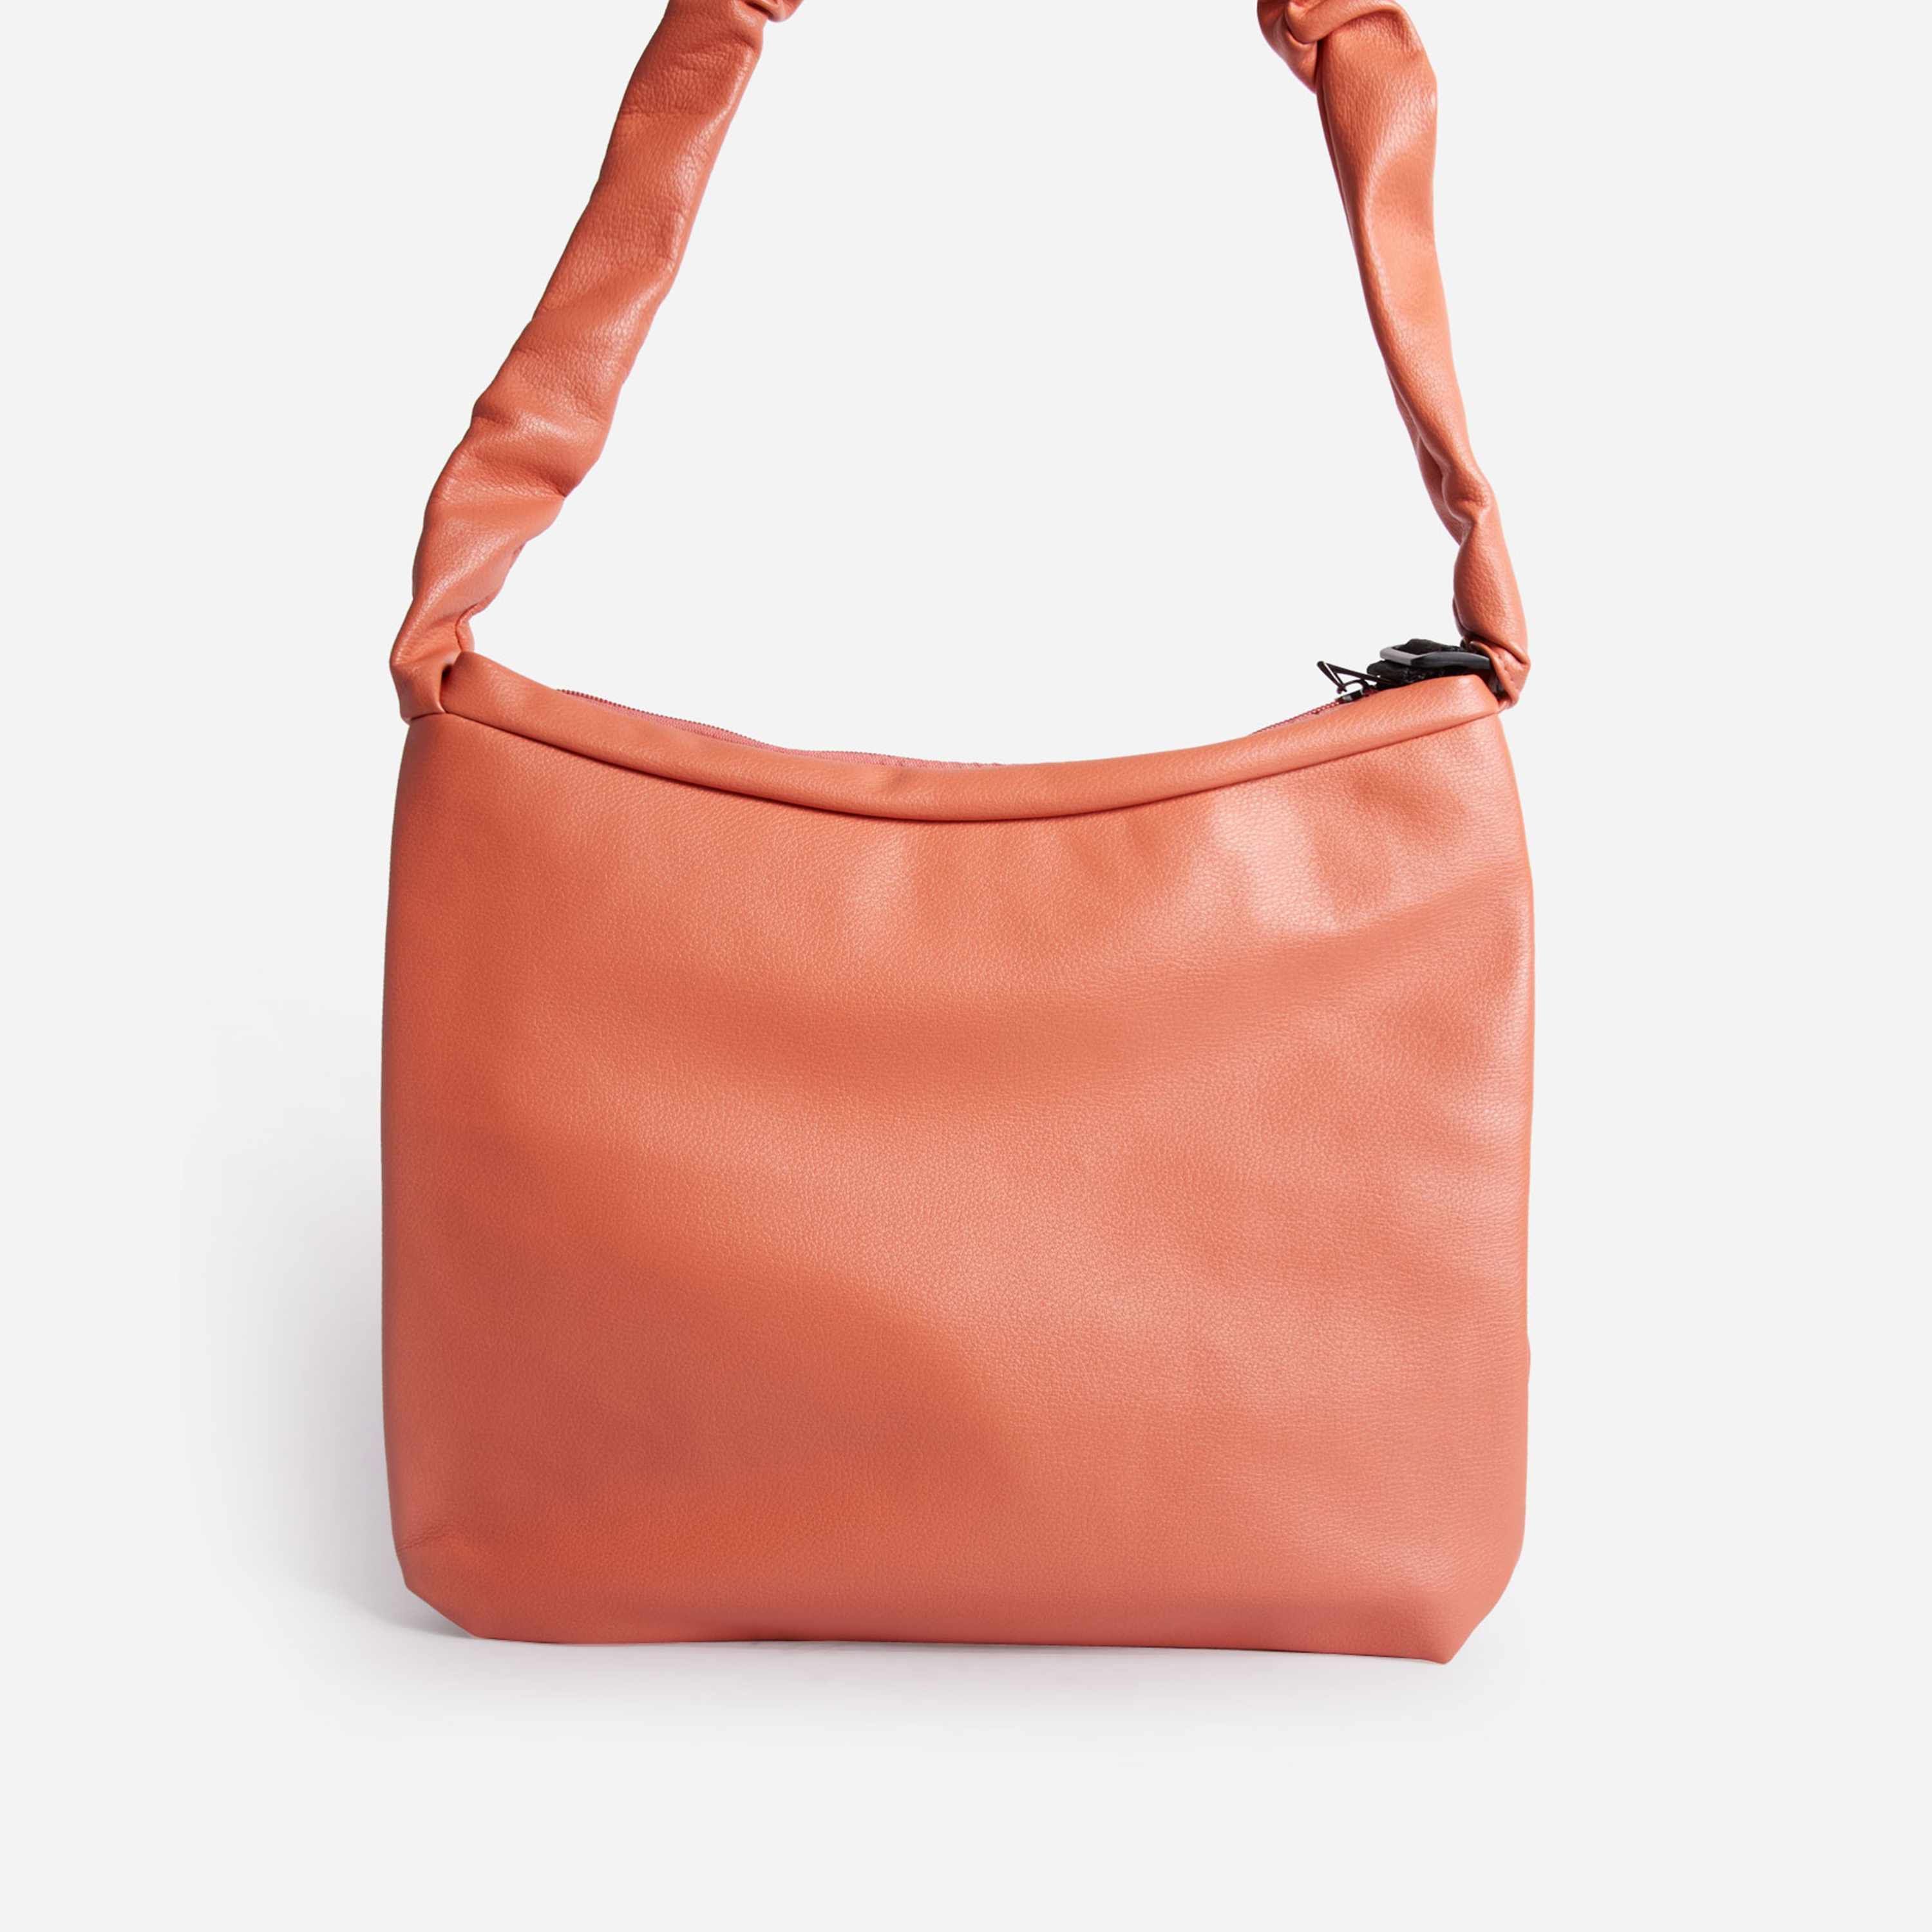 Starry Ruched Handle Shopper Bag In Orange Faux Leather